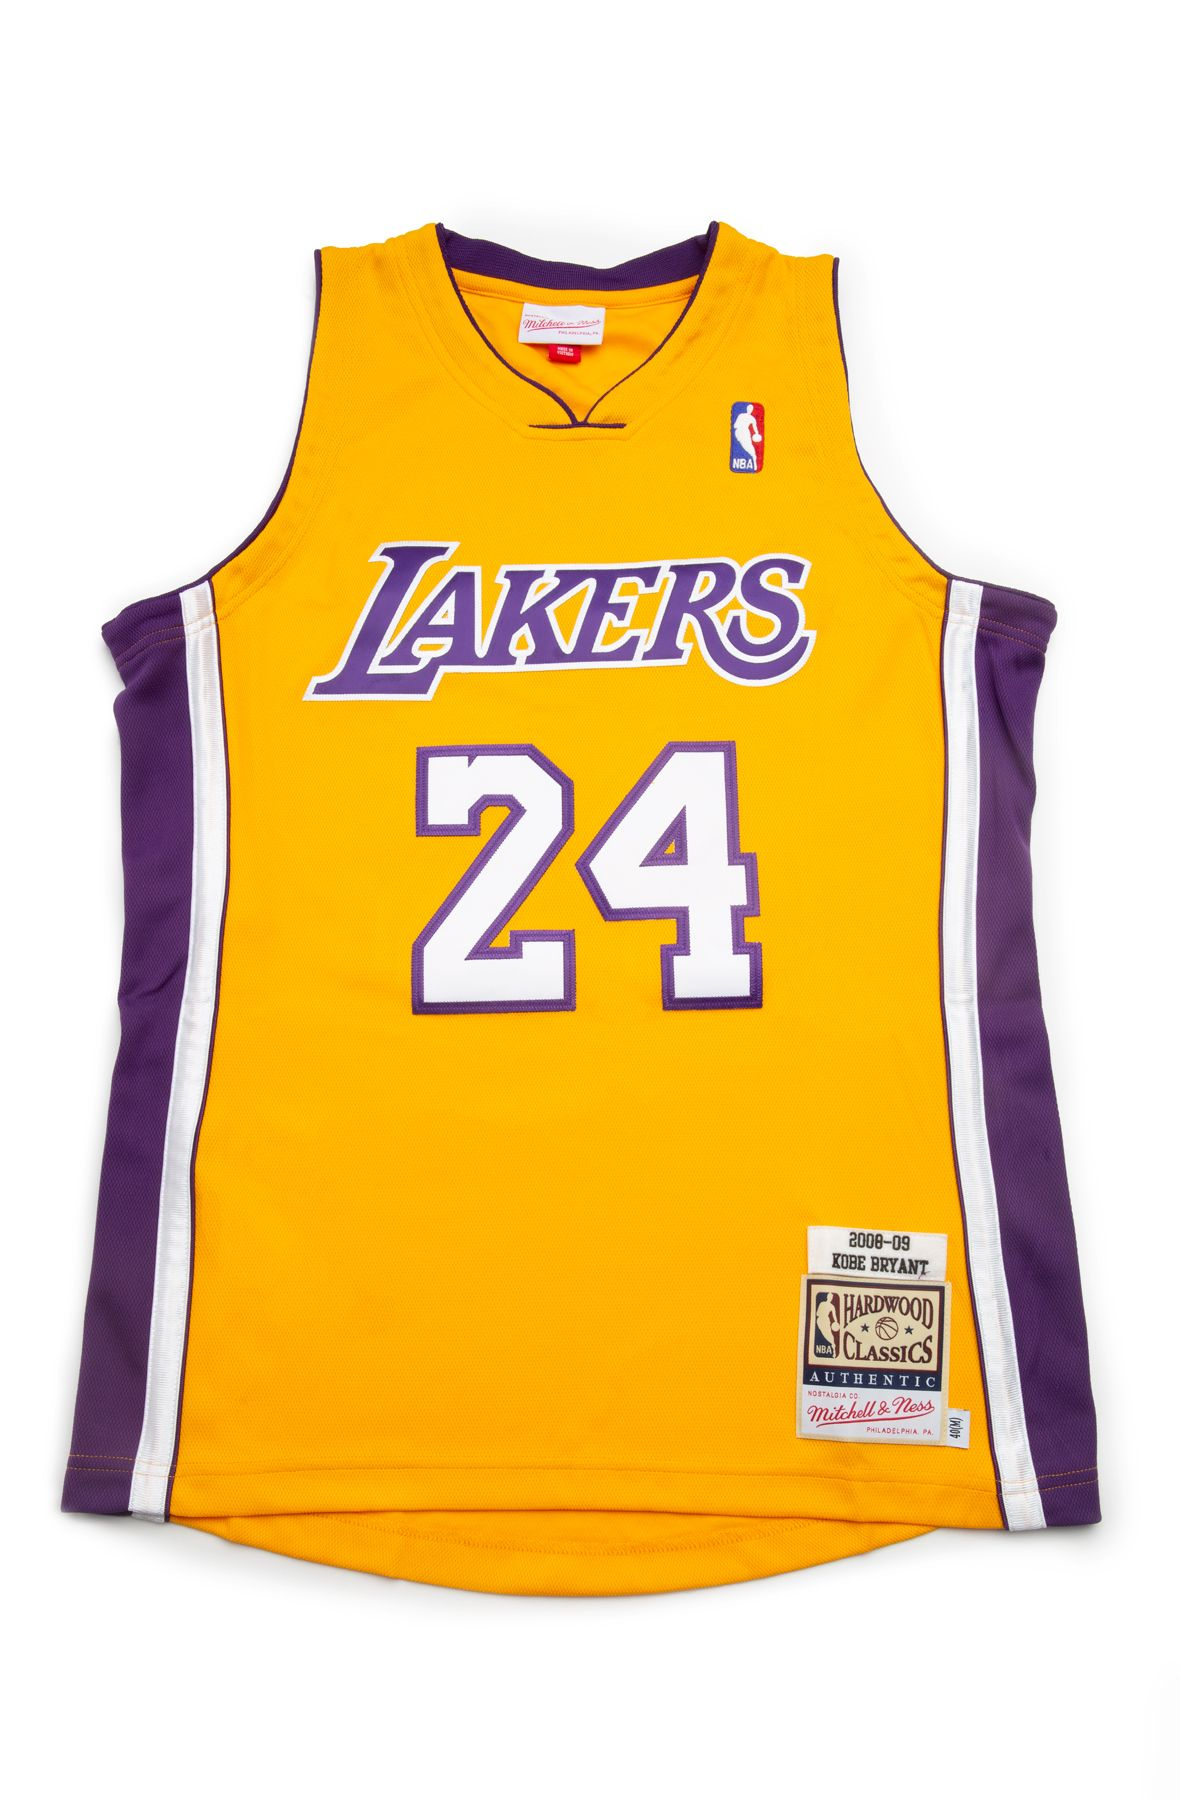 Los Angeles Lakers Kobe Bryant 2008 09 Authentic Jersey Light Gold